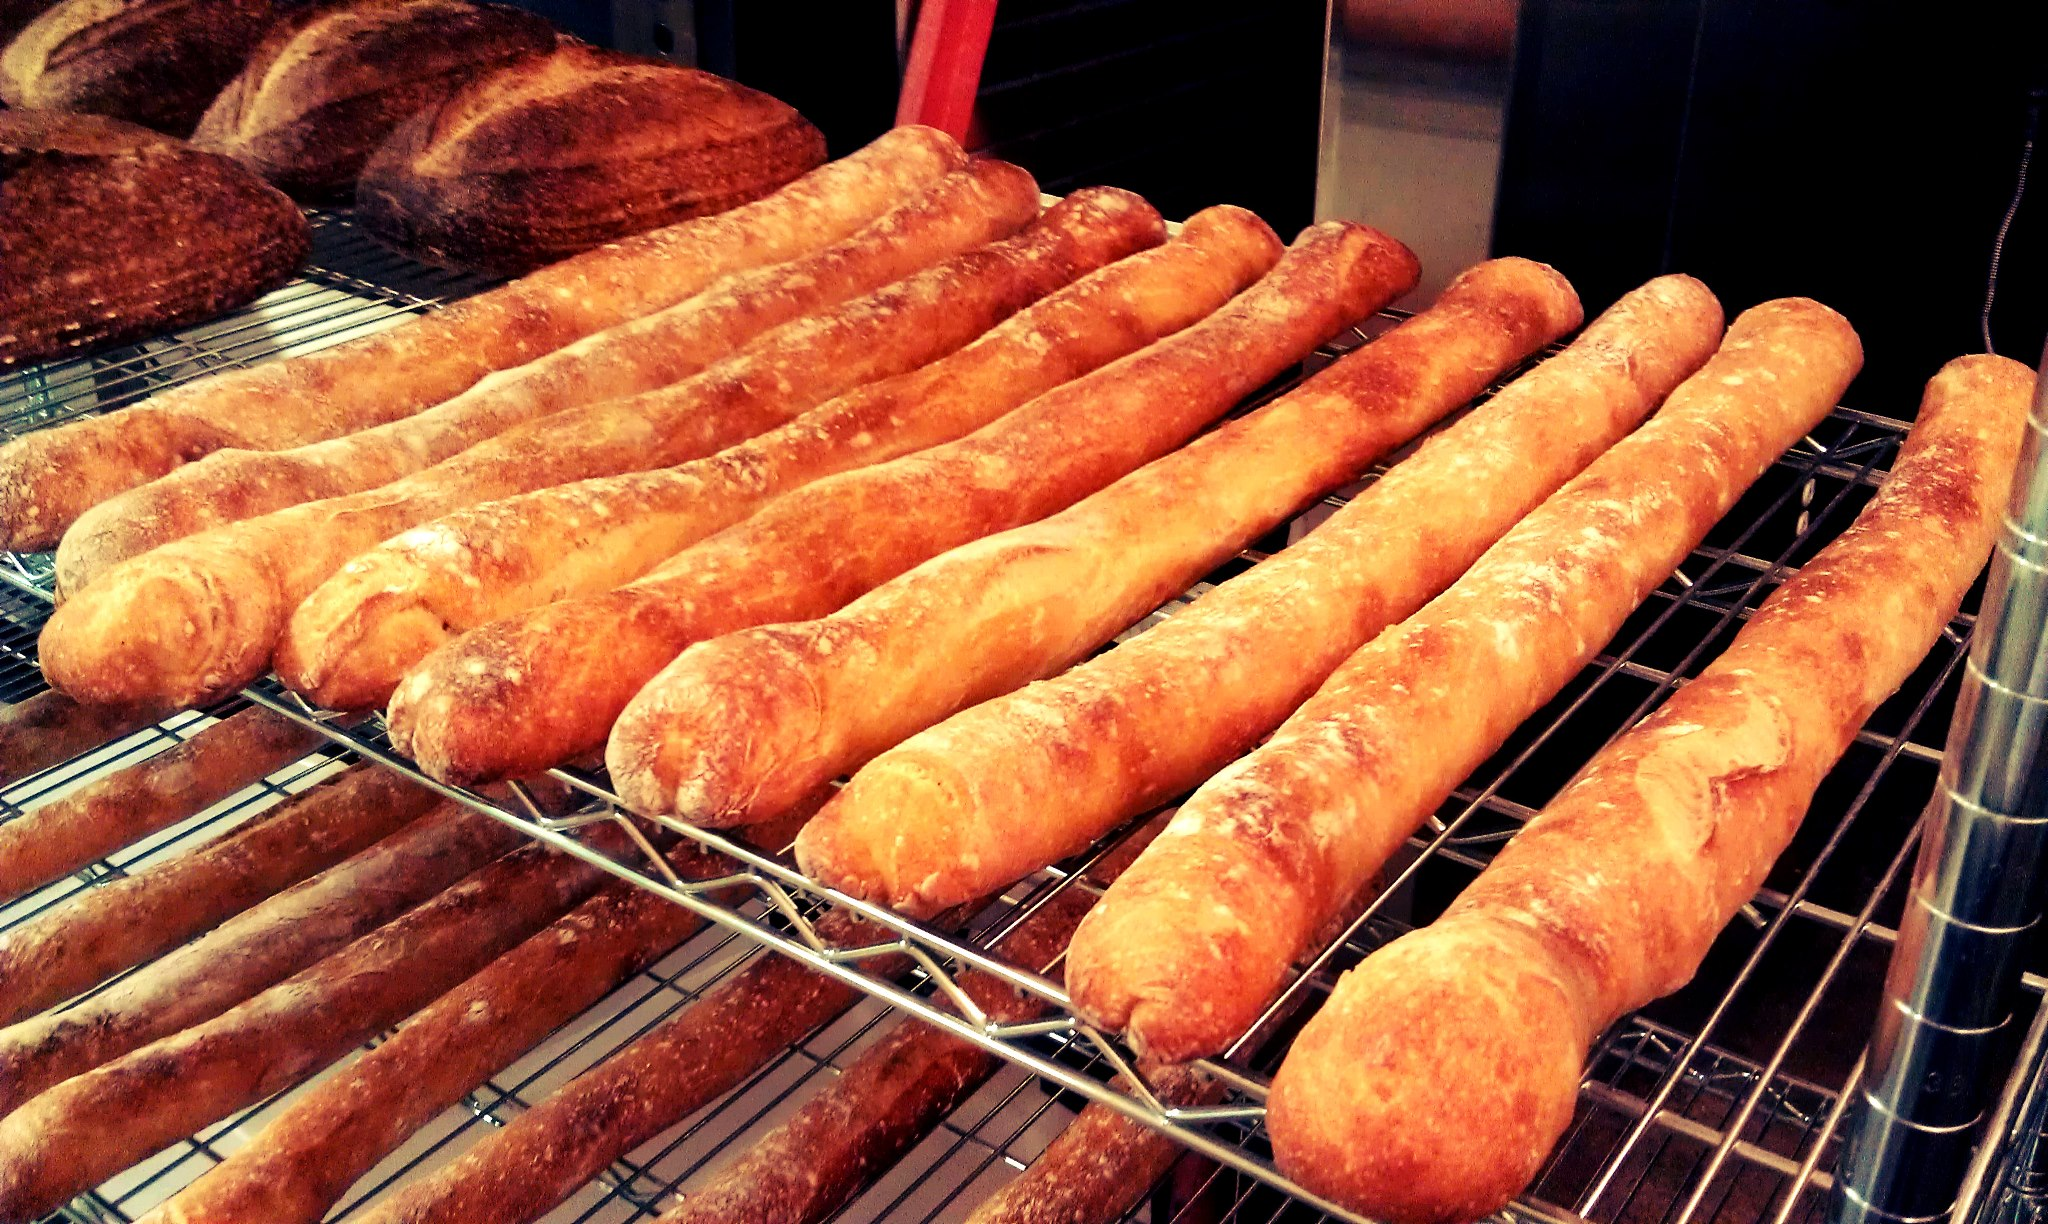 Baguettes from Amelia's Bread of Indianapolis